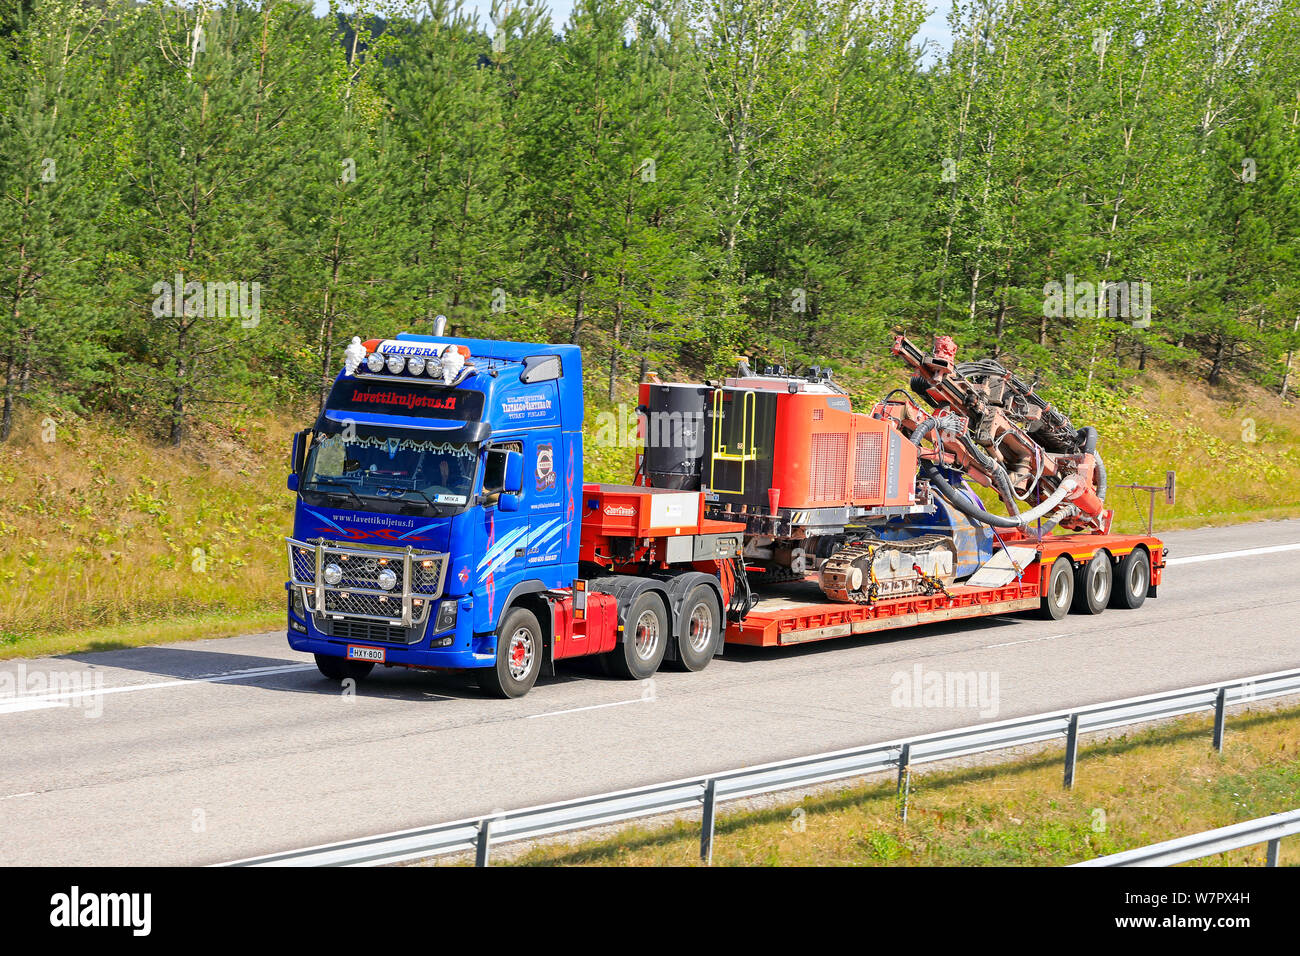 Drill Rig Stock Photos & Drill Rig Stock Images - Alamy